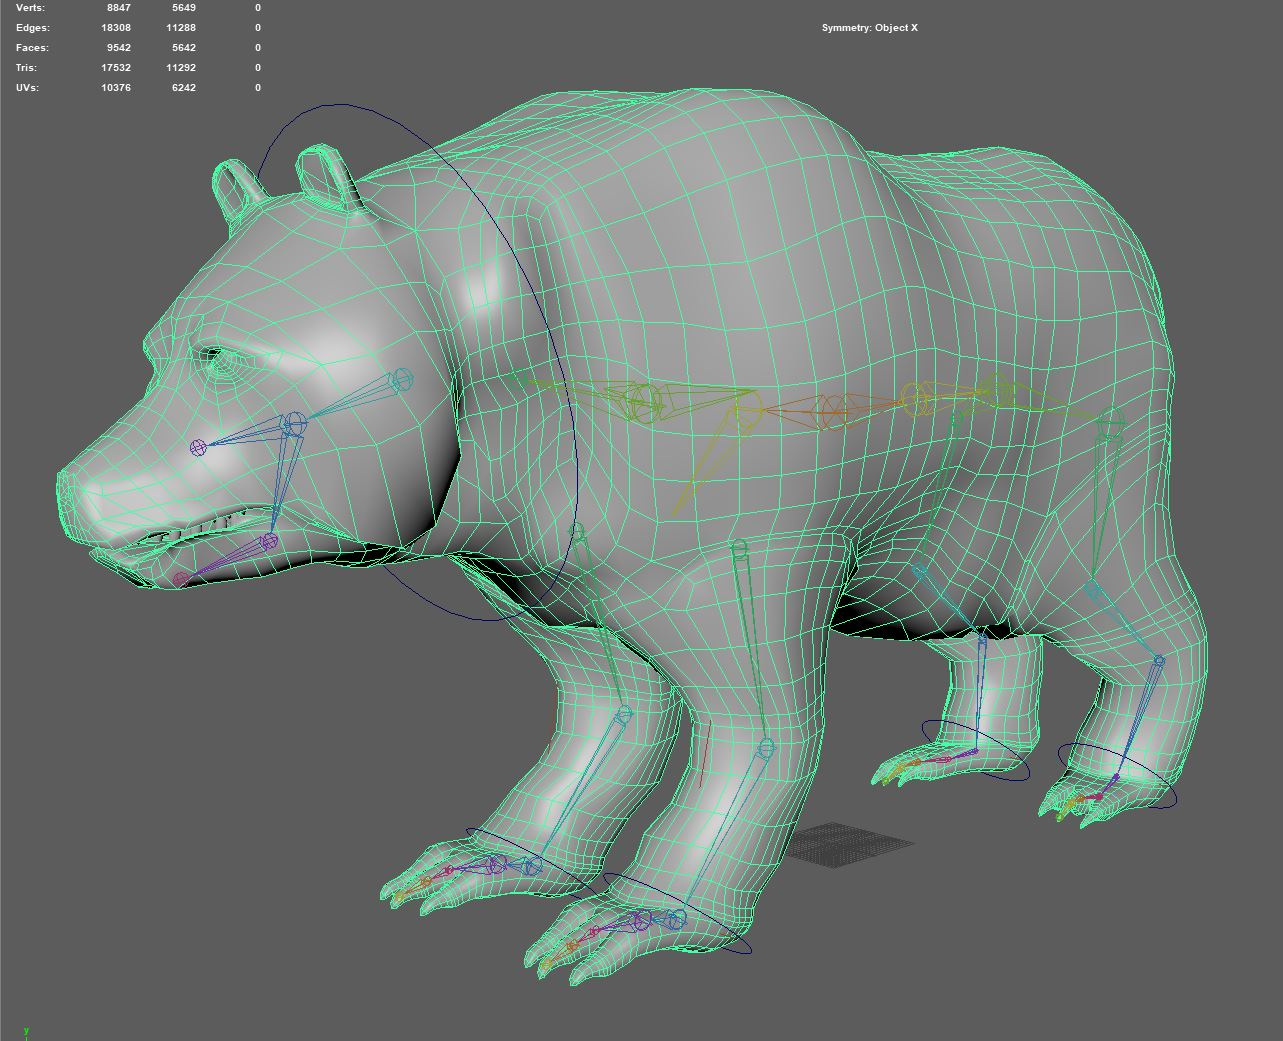 Final model and weight-painted rig. Texture for the bear was outsourced to a student outside of the project.